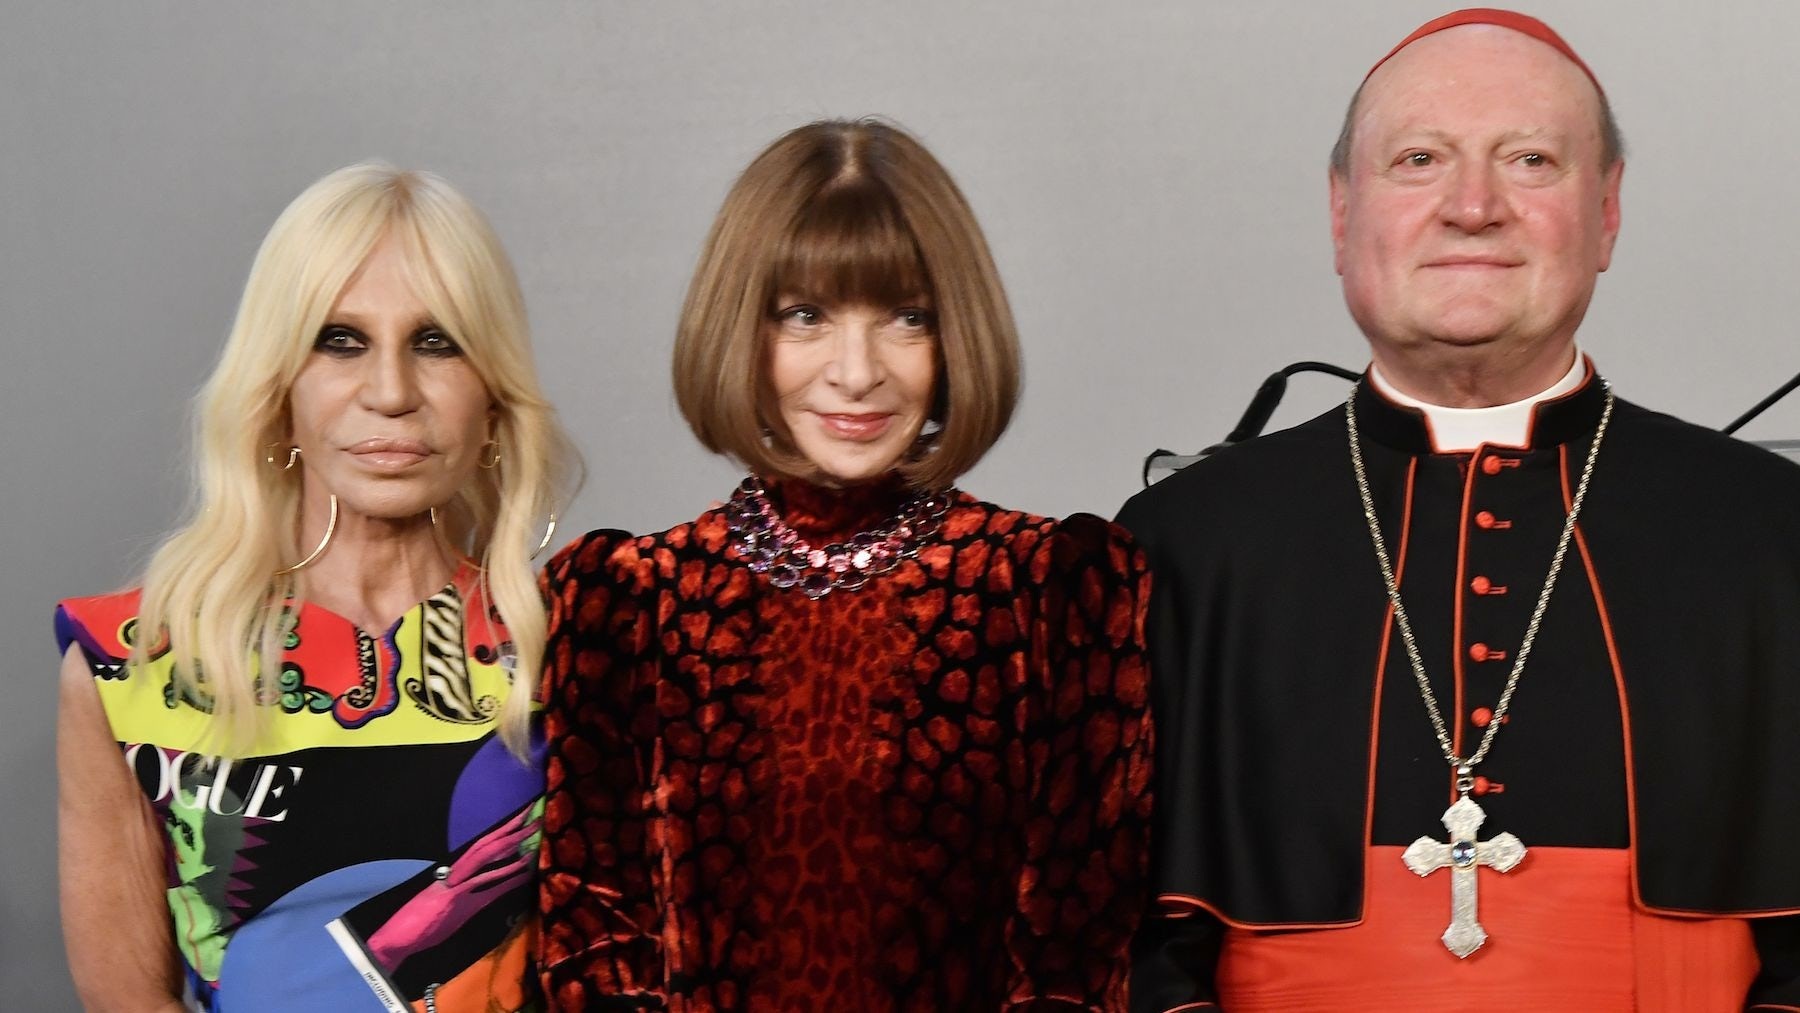 Donatella Versace with Anna Wintour and cardinal Gianfranco Ravasi, President of the Vatican Pontifical Council for Culture, at Rome's Palazzo Colonna | Source: Getty